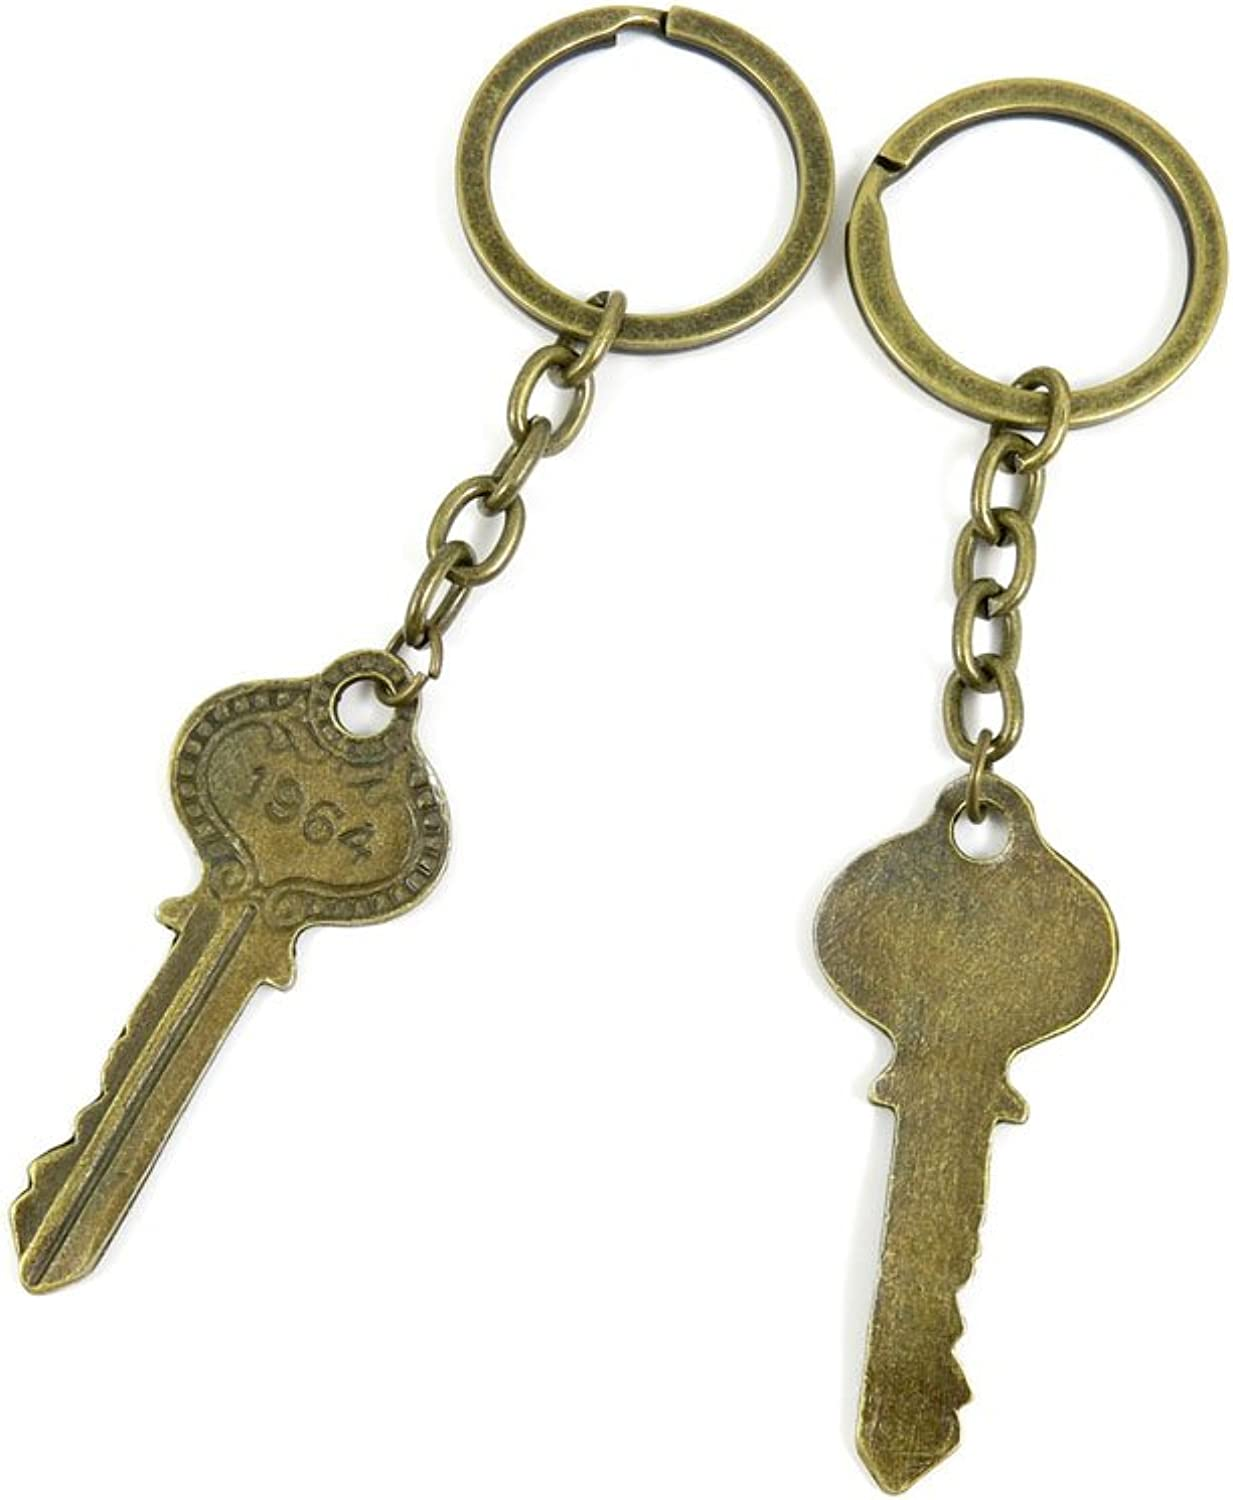 100 PCS Keyrings Keychains Key Ring Chains Tags Jewelry Findings Clasps Buckles Supplies R3BO8 1964 Key